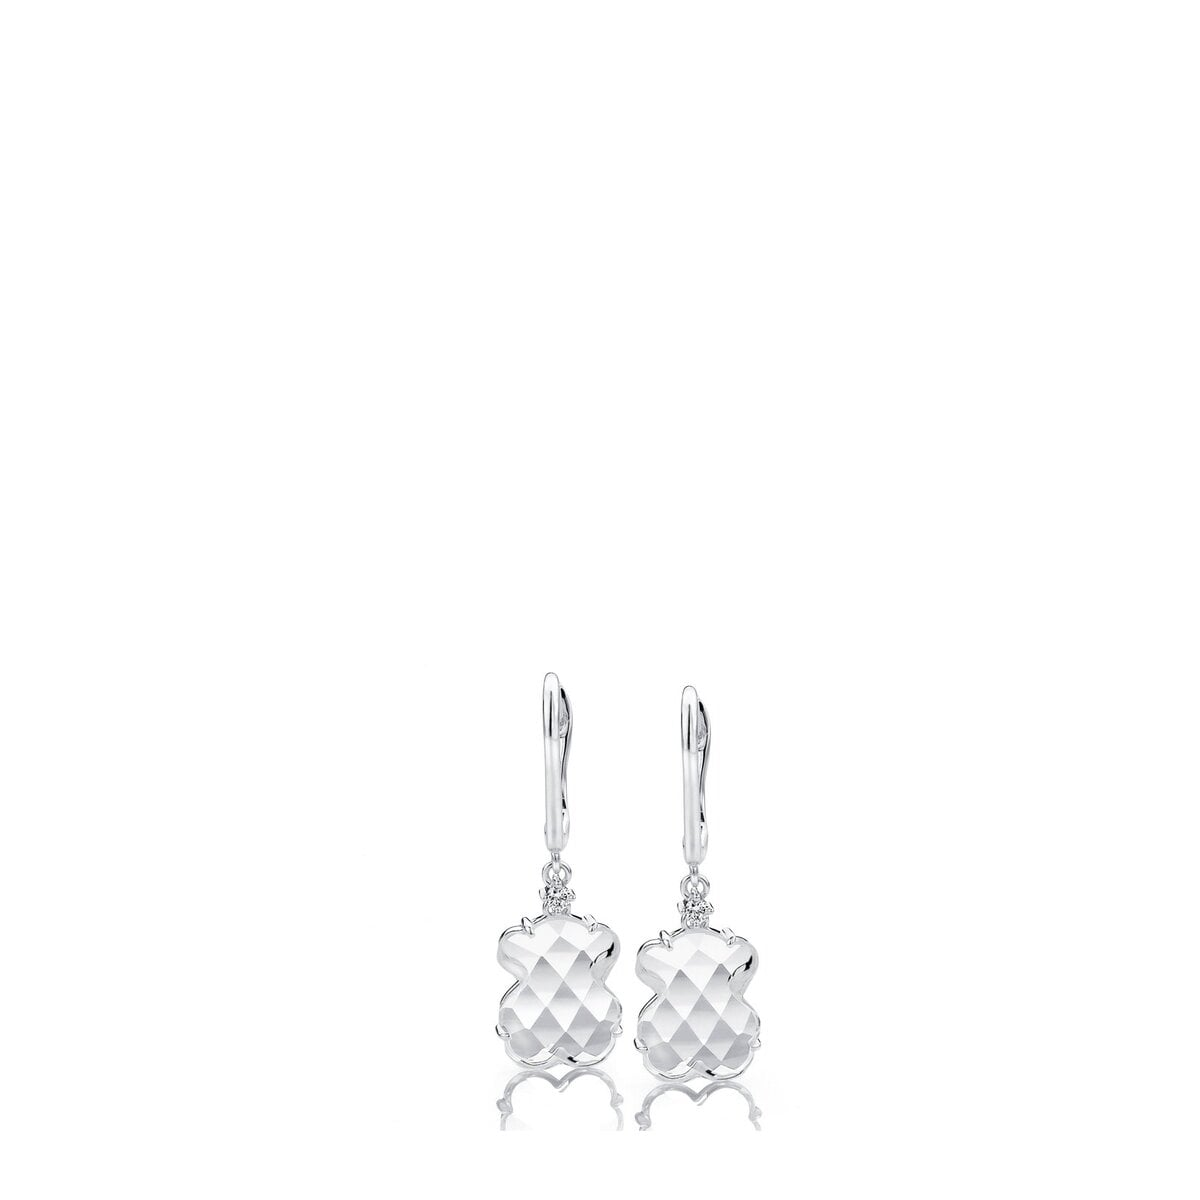 White Gold Ice Earrings with Rock Crystal and Diamond